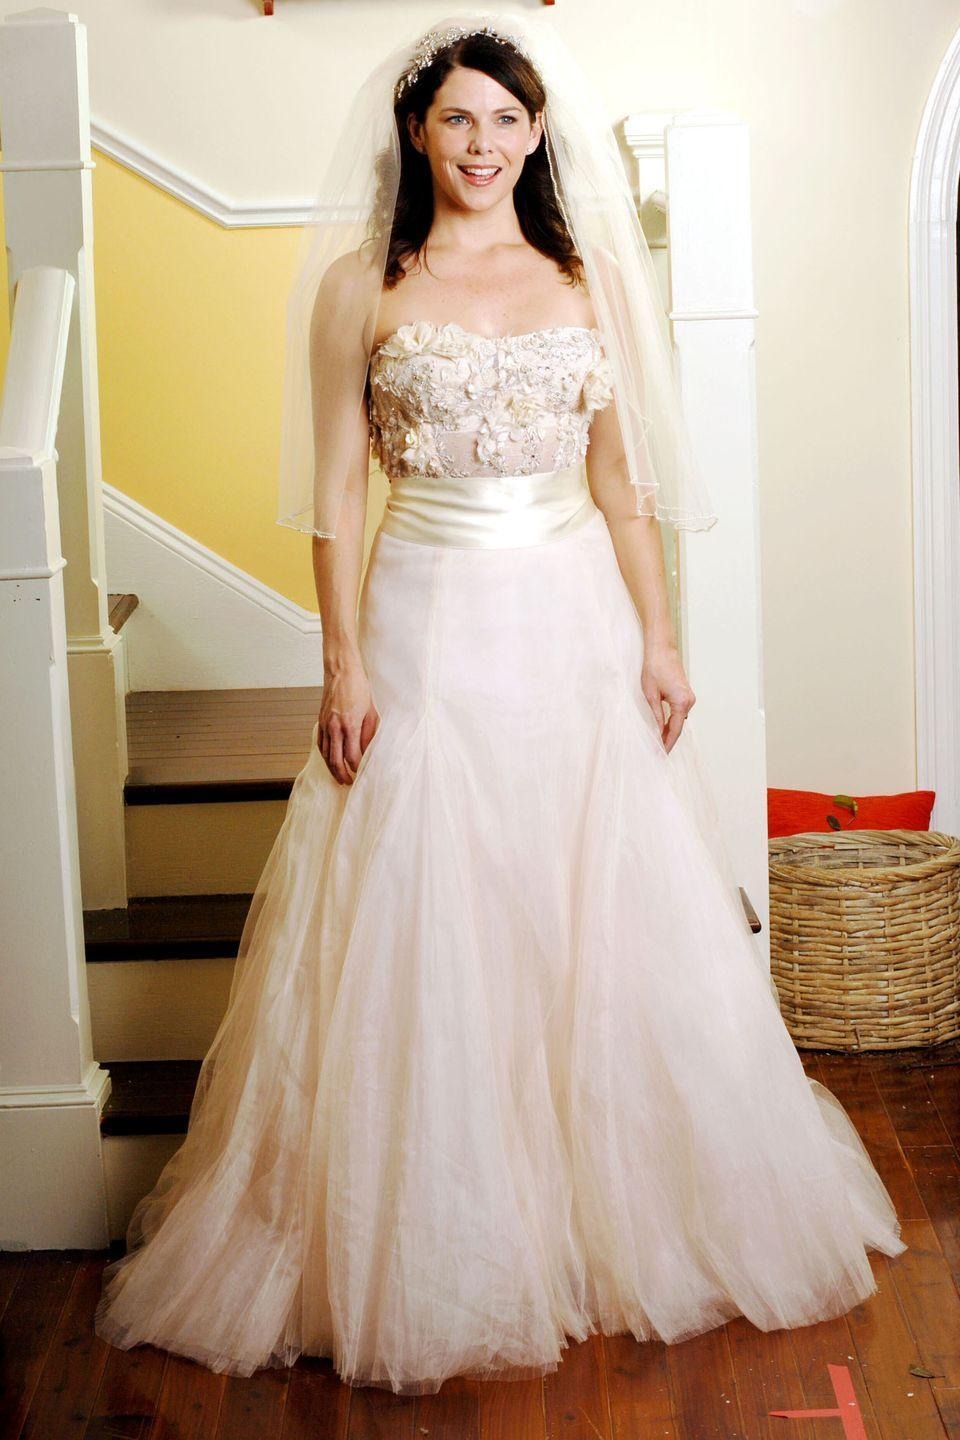 """<p>In a season 6 episode titled """"The Perfect Dress,"""" Lorelei attempts to find just that for her upcoming wedding to Luke. She goes dress shopping with Sookie and comes across the perfect blush satin dress with a flowered bodice — which also happened to be on sale!</p>"""